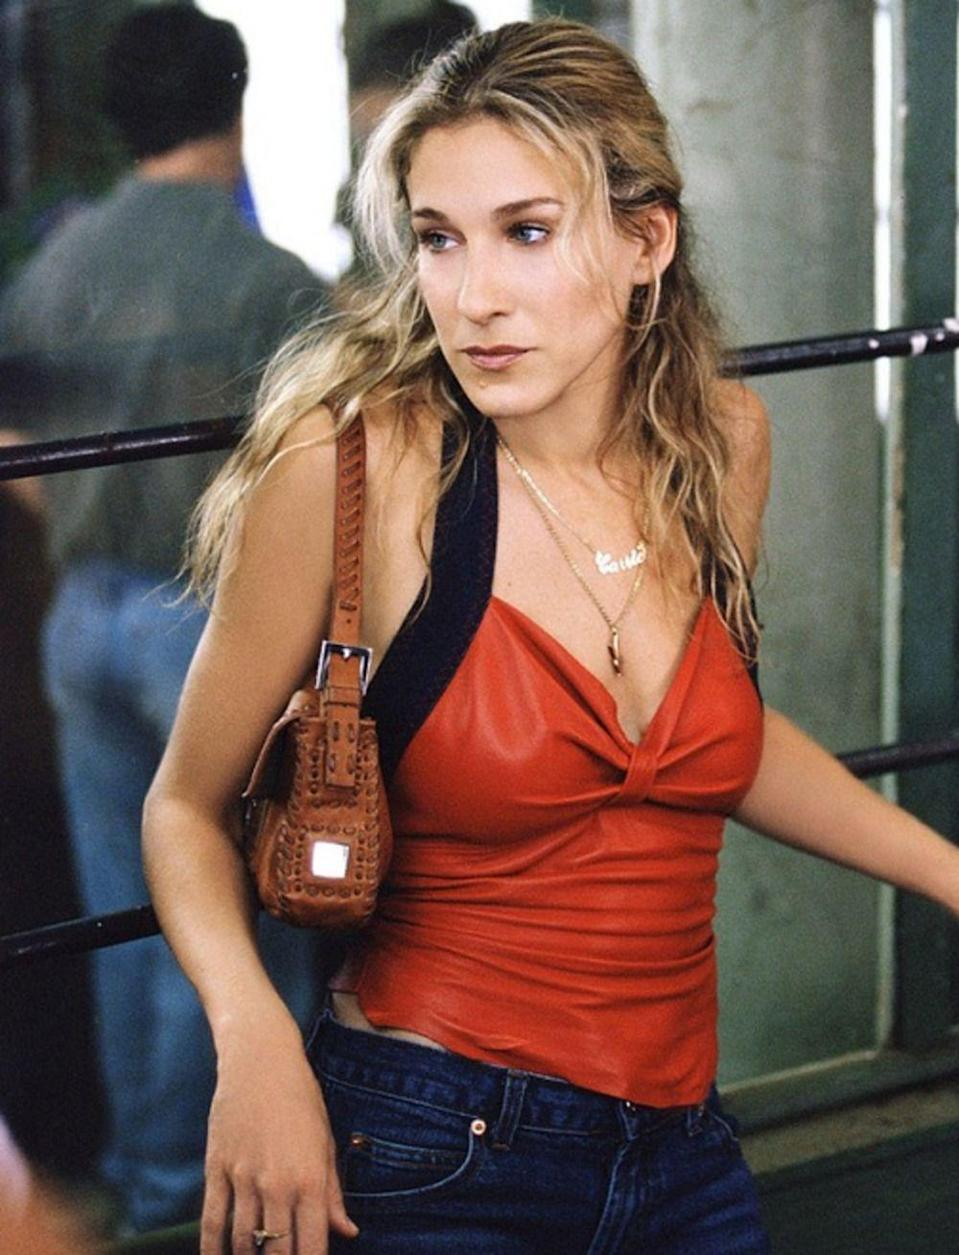 """<p>When <a href=""""https://www.youtube.com/watch?v=gl73_Agg7YY"""" rel=""""nofollow noopener"""" target=""""_blank"""" data-ylk=""""slk:Carrie Bradshaw got robbed in Season 3 of"""" class=""""link rapid-noclick-resp"""">Carrie Bradshaw got robbed in Season 3 of </a><em><a href=""""https://www.youtube.com/watch?v=gl73_Agg7YY"""" rel=""""nofollow noopener"""" target=""""_blank"""" data-ylk=""""slk:Sex and the City"""" class=""""link rapid-noclick-resp"""">Sex and the City</a> </em>and protested by saying, """"It's a baguette!"""", she helped immortalize the coveted bag. Although the episode aired in 2000, the design began building steam the year prior.</p>"""